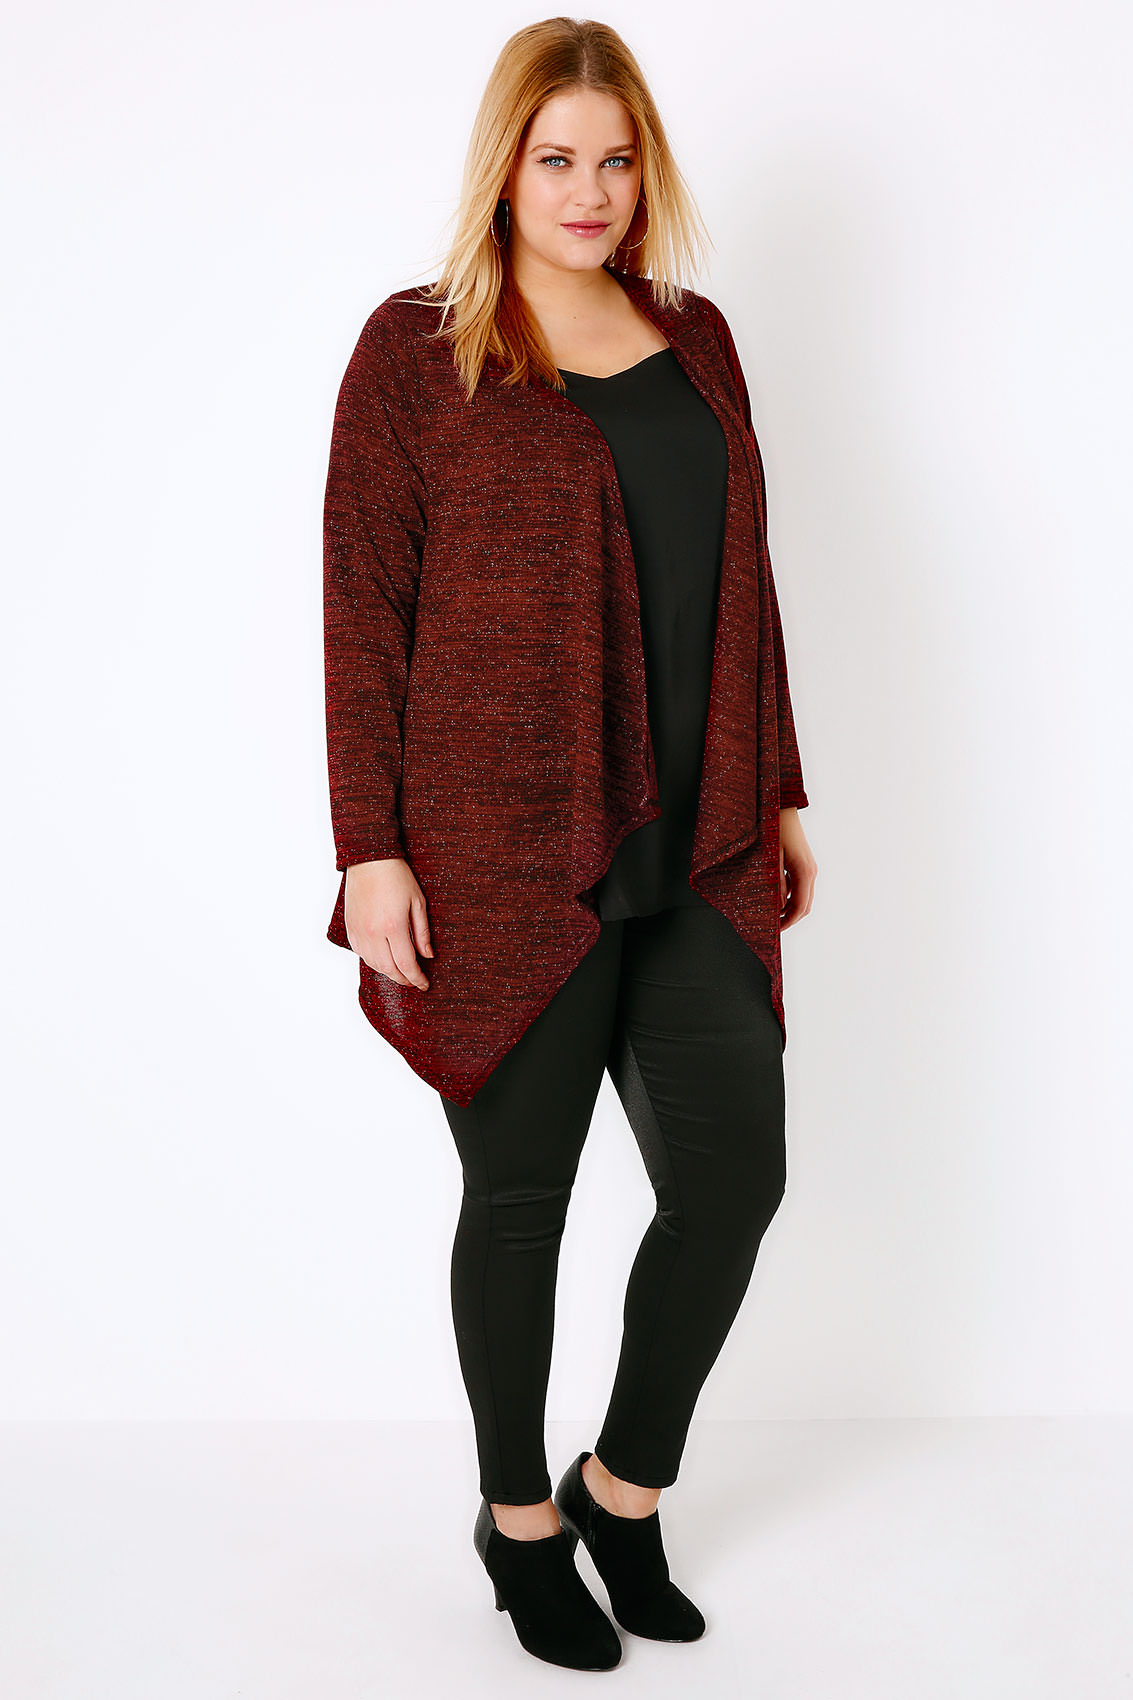 Red Sparkle Cardigan With Waterfall Front, Plus Size 16 to 36